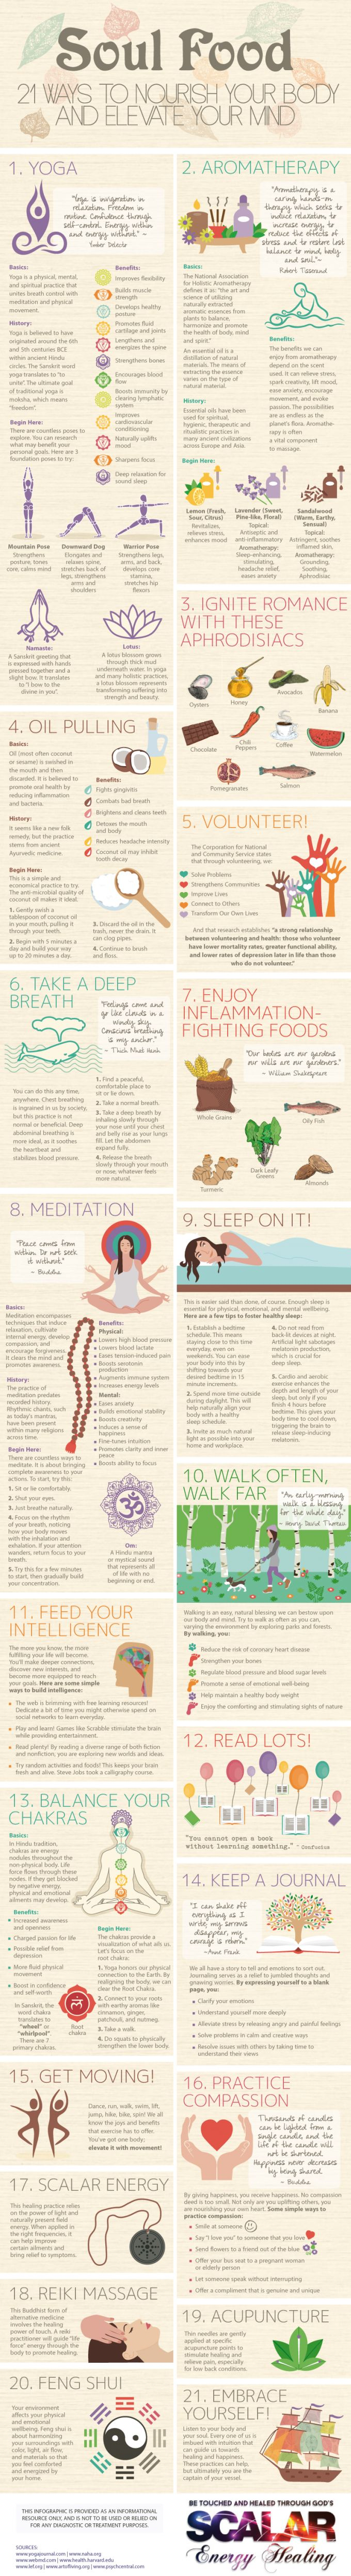 21 Ways To Nourish Your Body & Elevate Your Mind! | The Tao of Dana